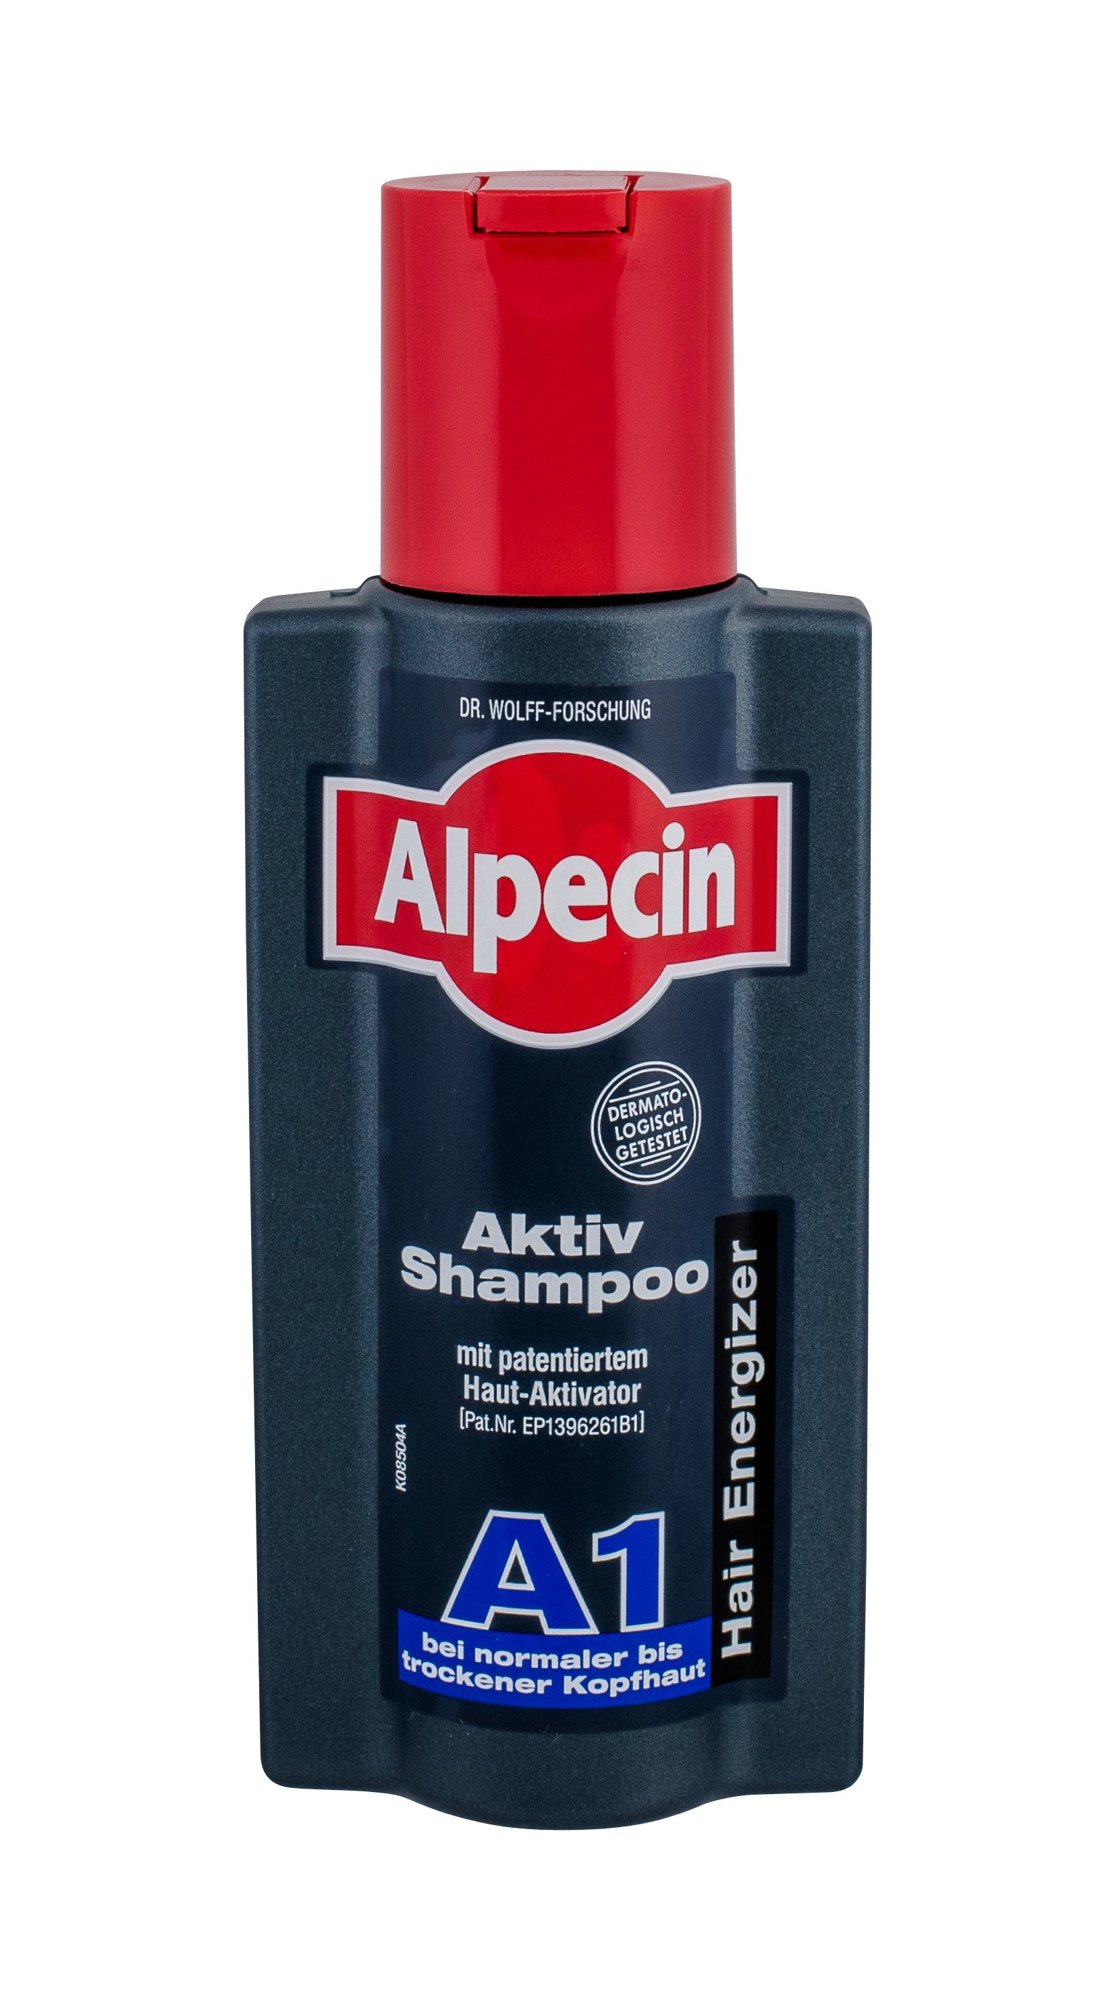 Alpecin Active Shampoo A1 Cosmetic 250ml